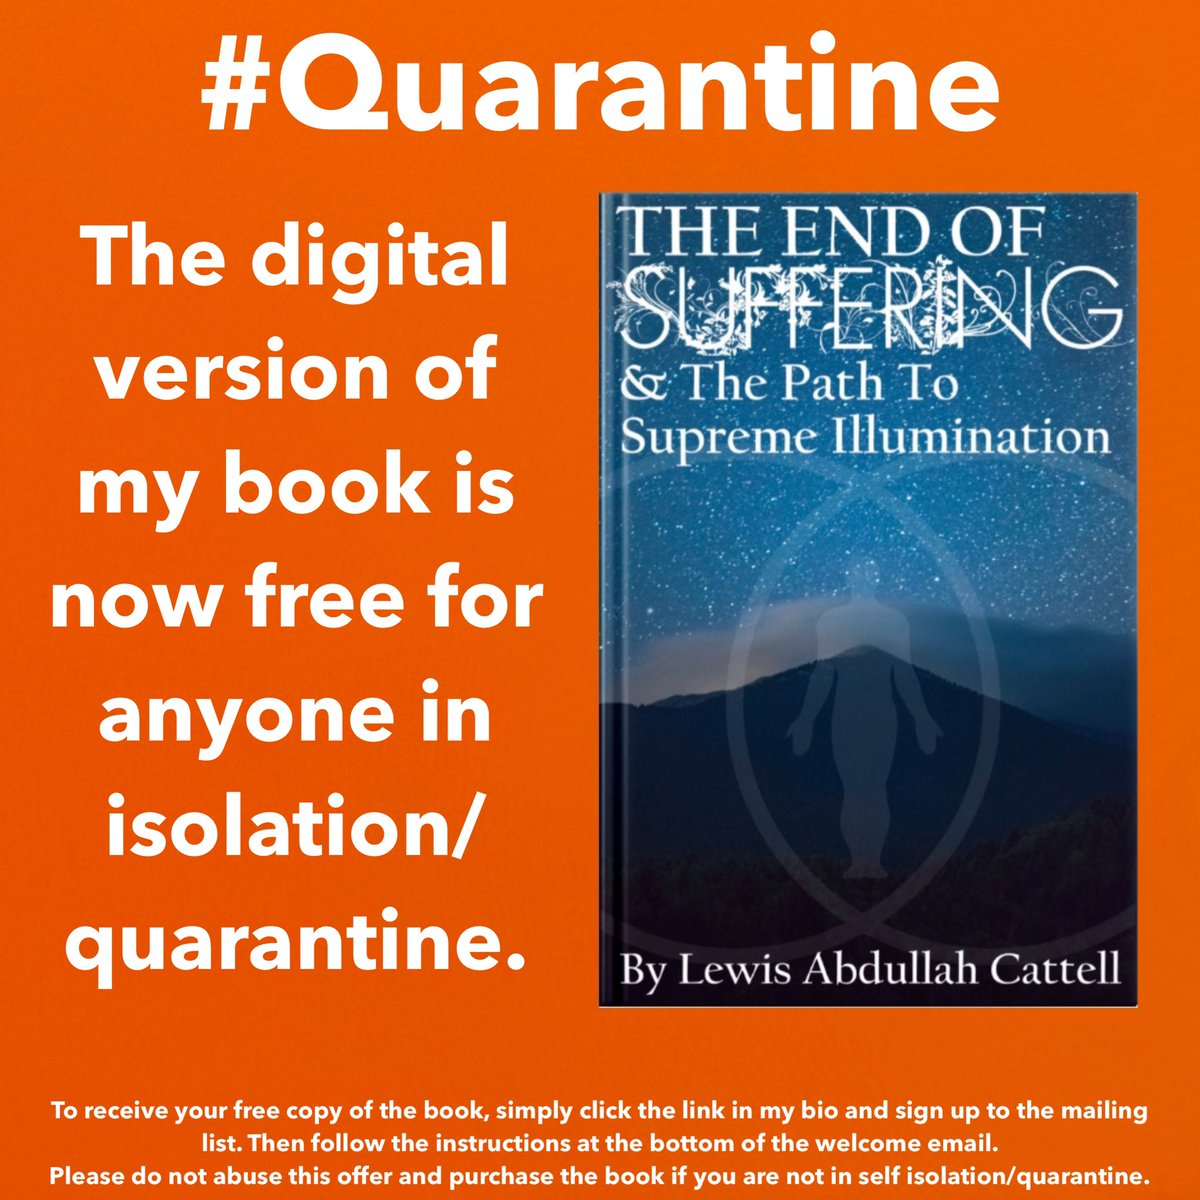 @CoachBoldenIV You can read my book for free if you are in quarantine (link in bio)